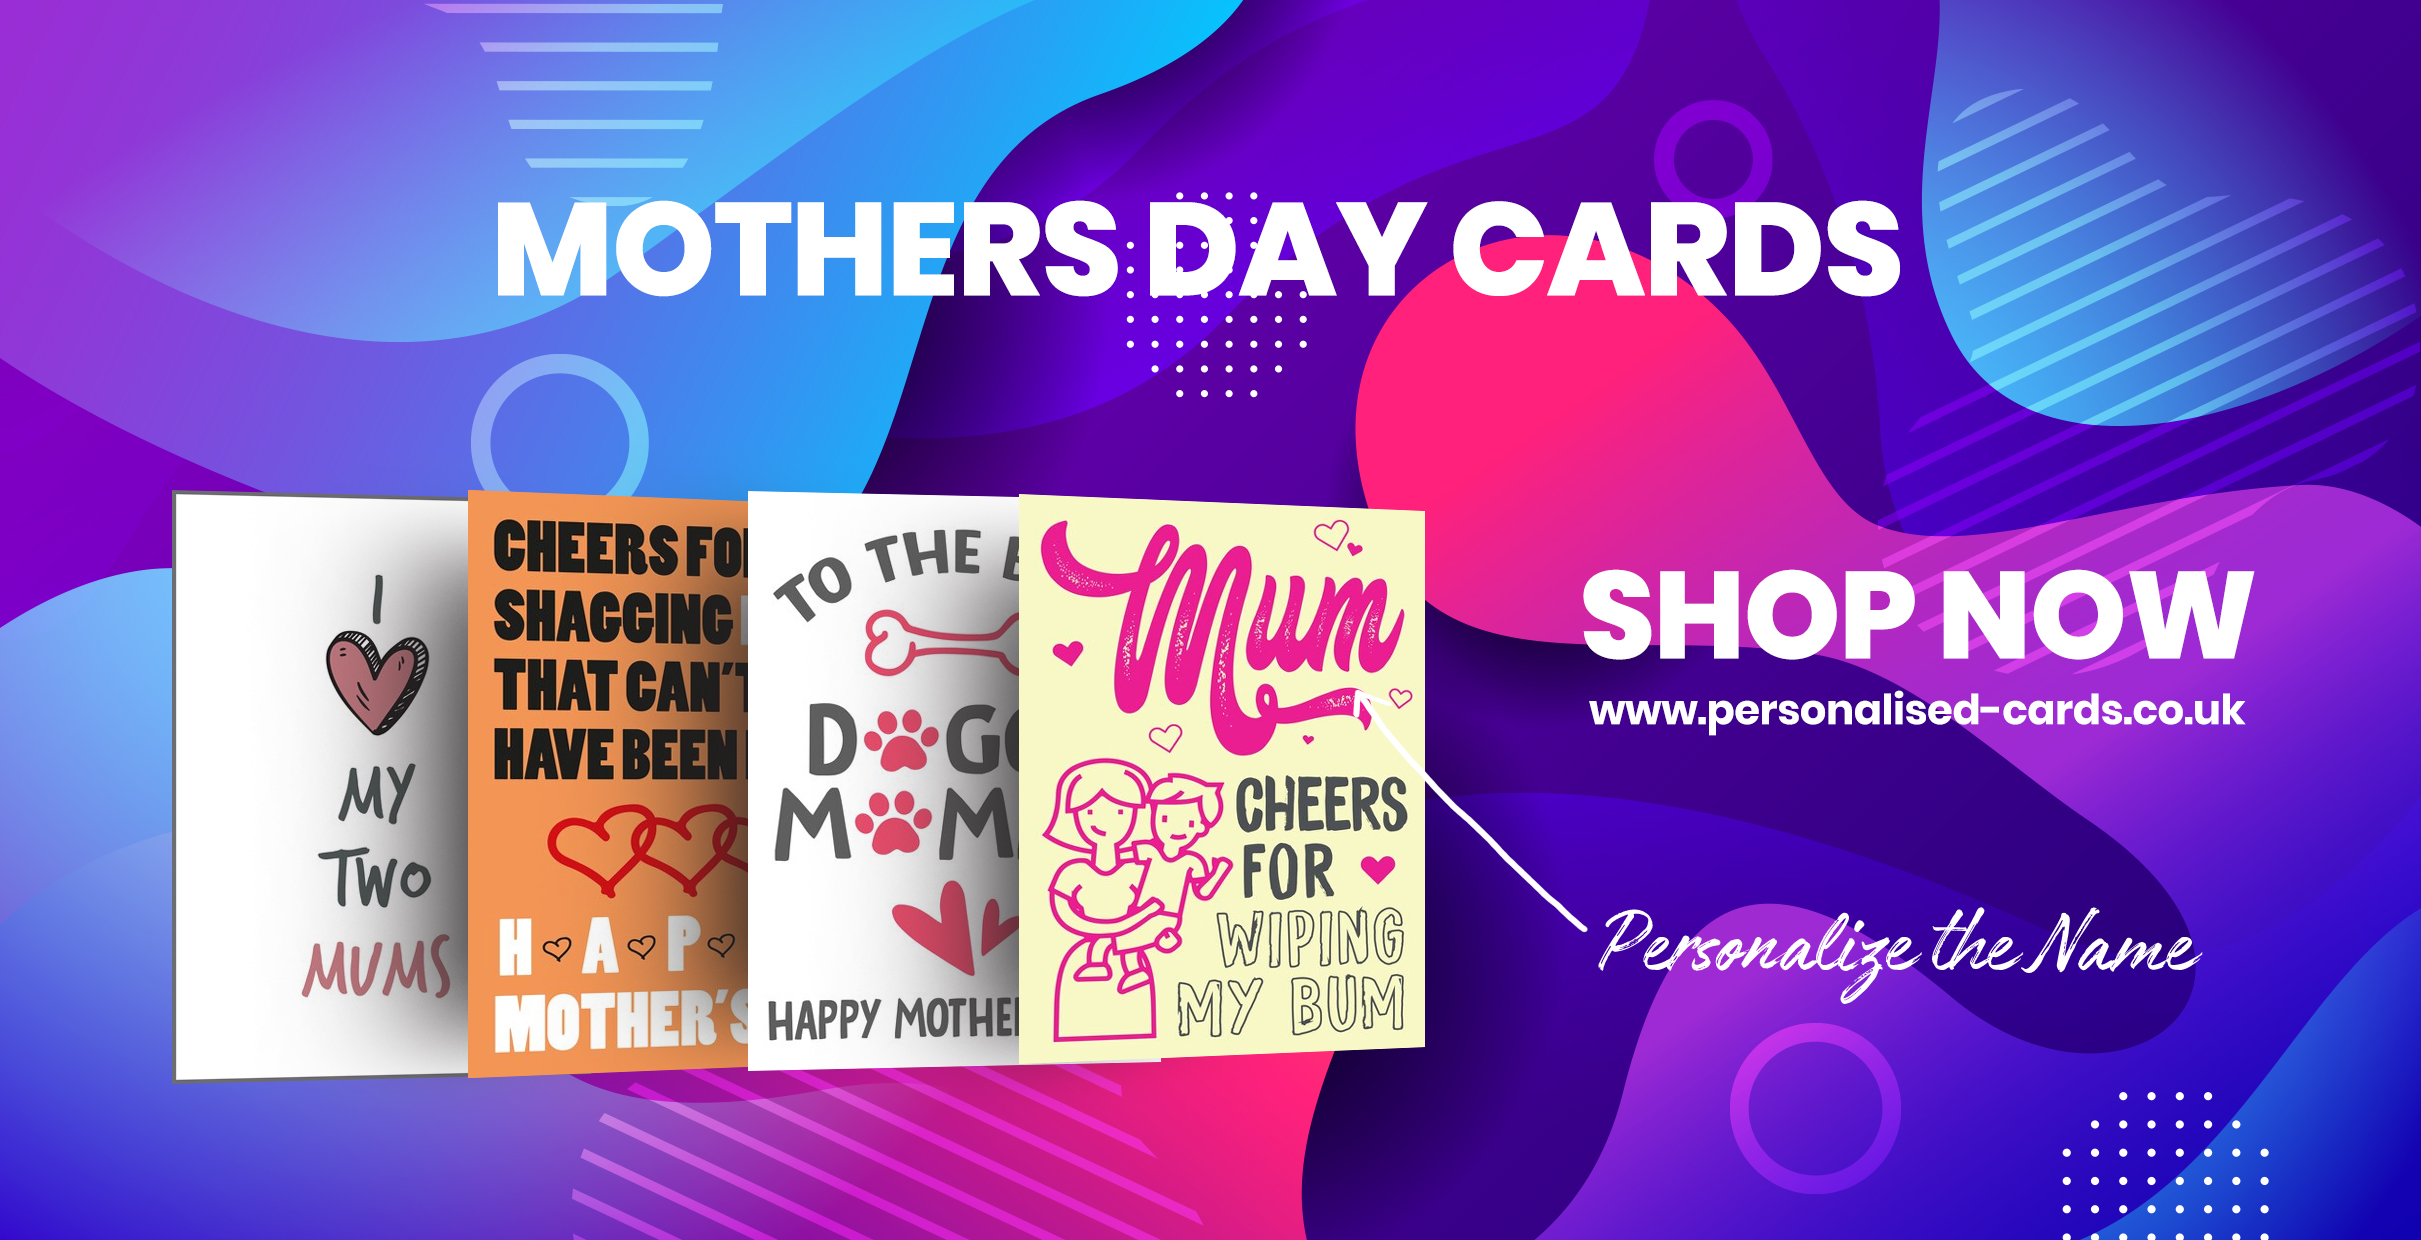 mothers-day-cards.jpg